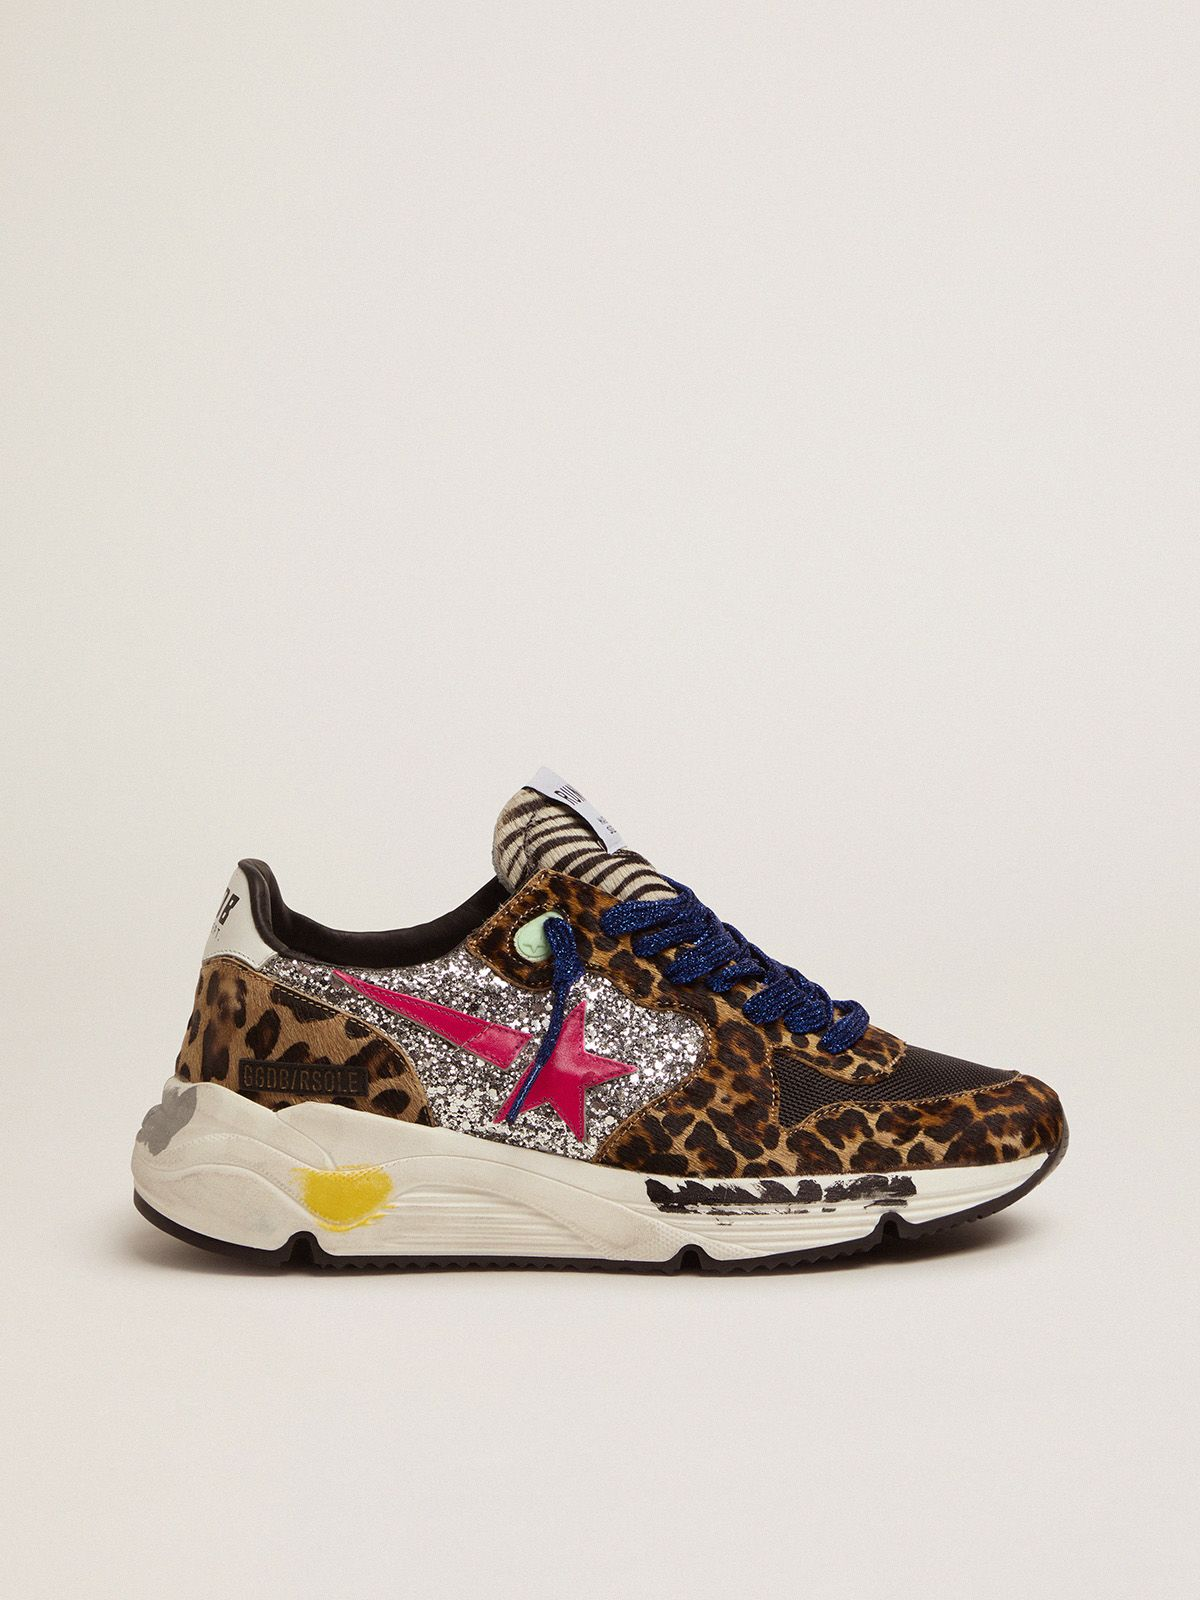 Running Sole sneakers in leopard-print pony skin with silver glitter inserts.